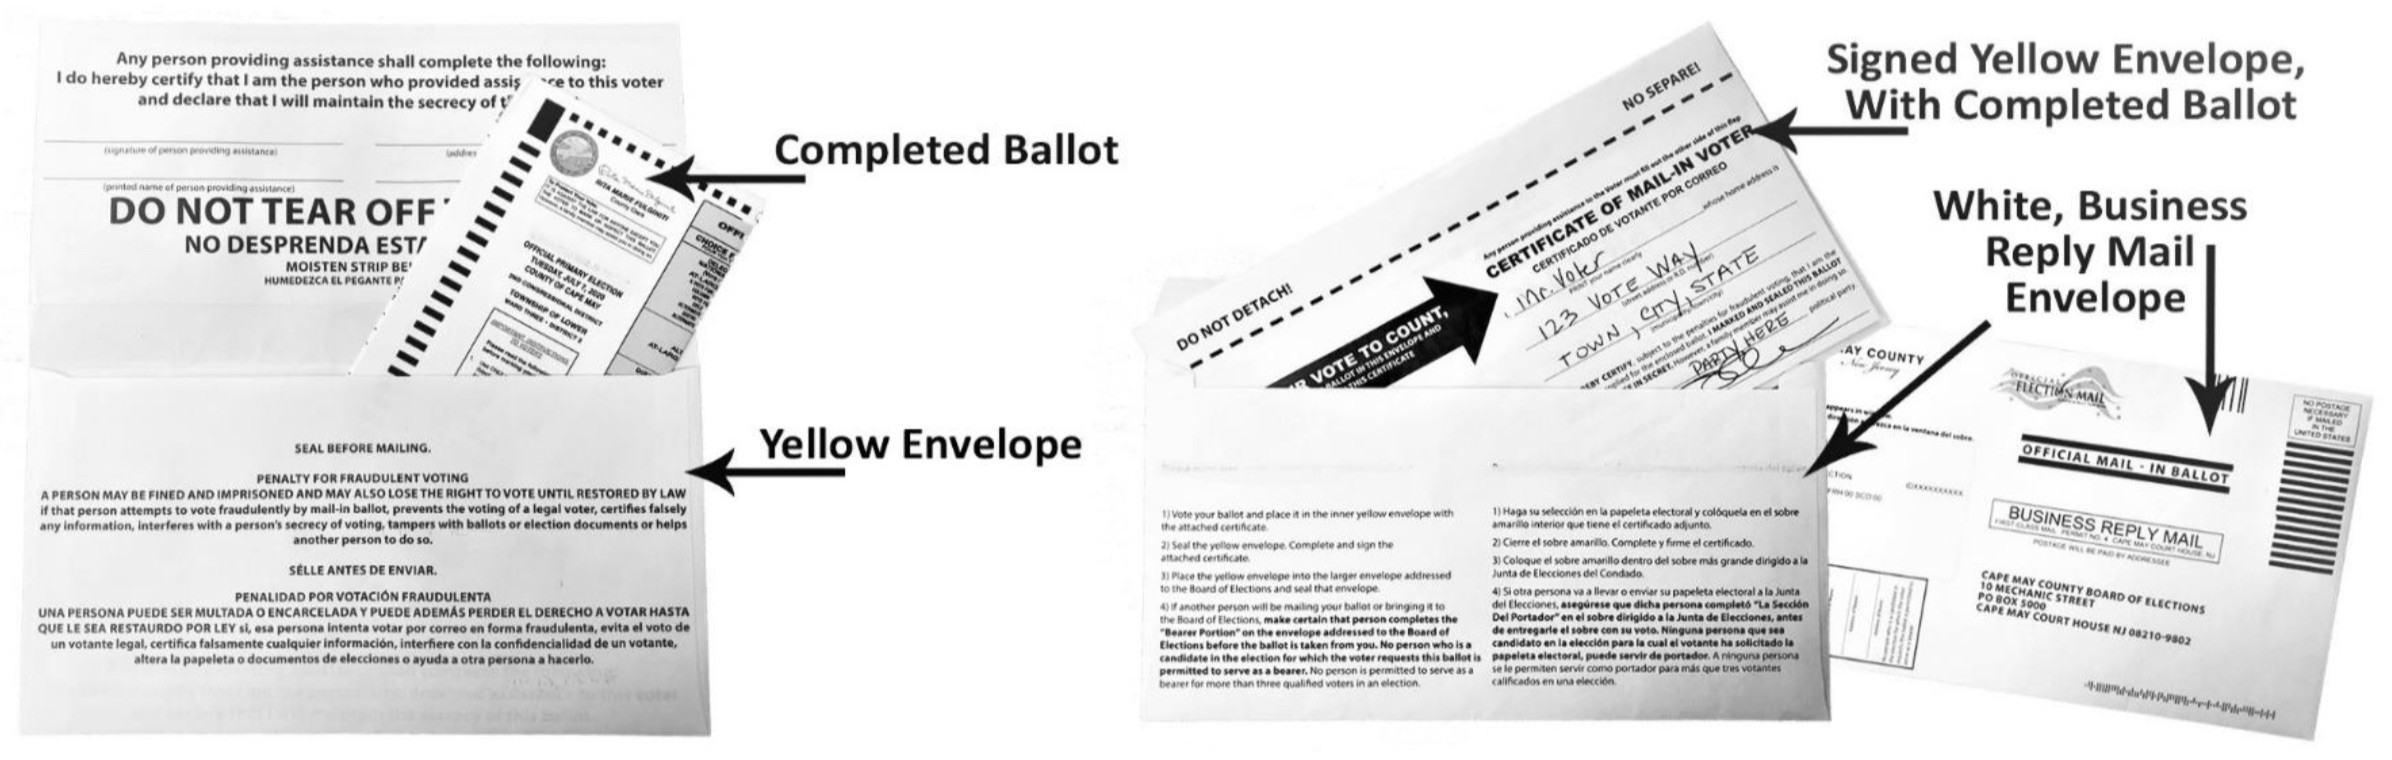 Examples of completed ballot, yellow envelope, signed yellow envelope, with completed ballot, white, business reply mail envelope